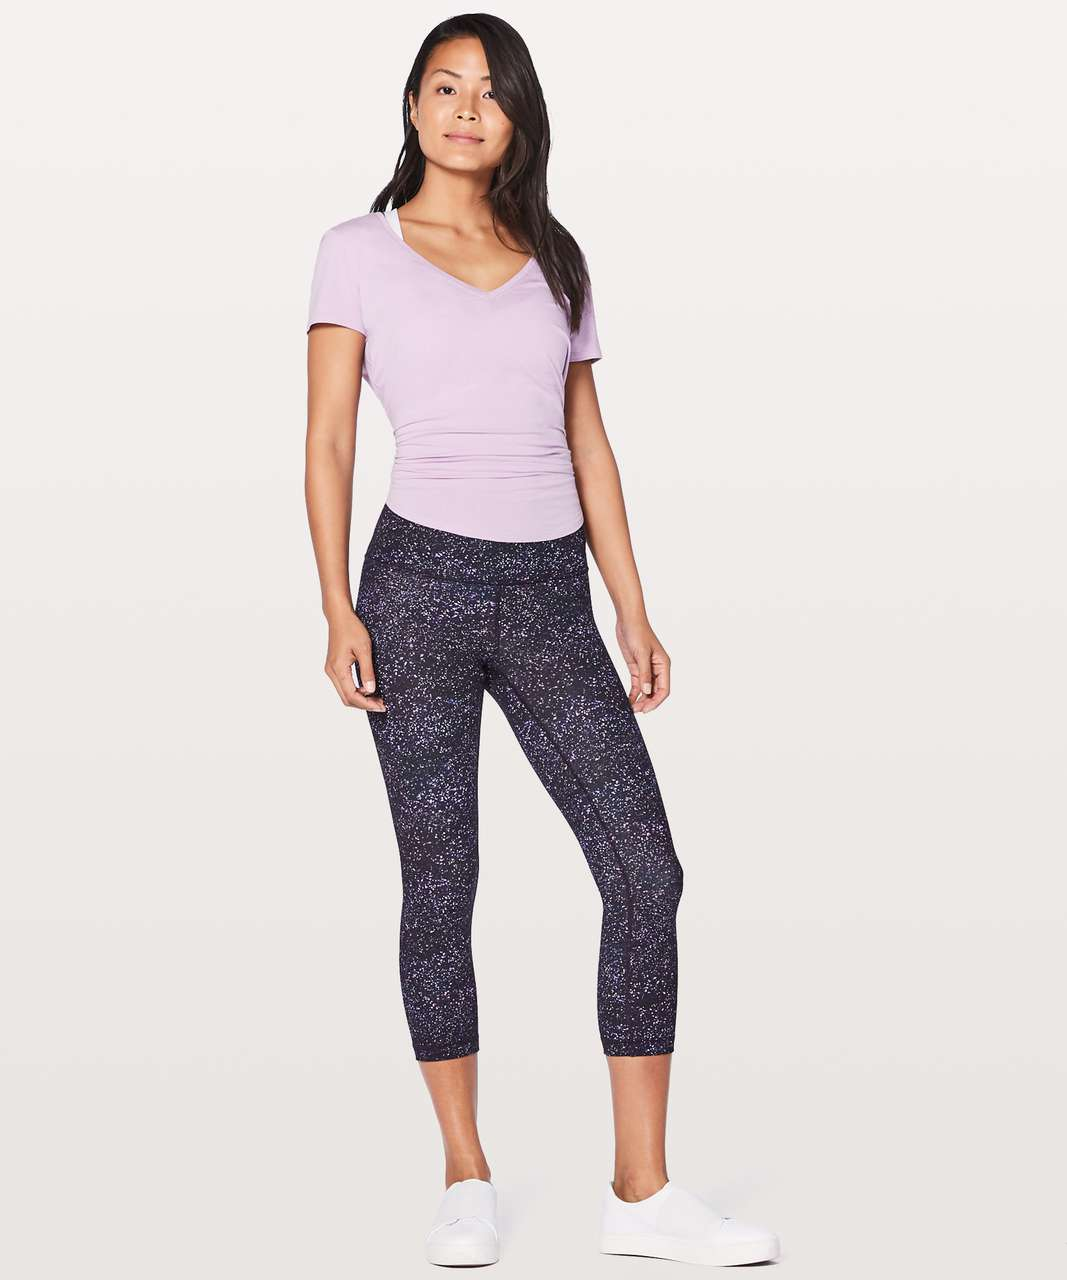 "Lululemon Wunder Under Crop (Hi-Rise) 21"" - Crystalline Multi"